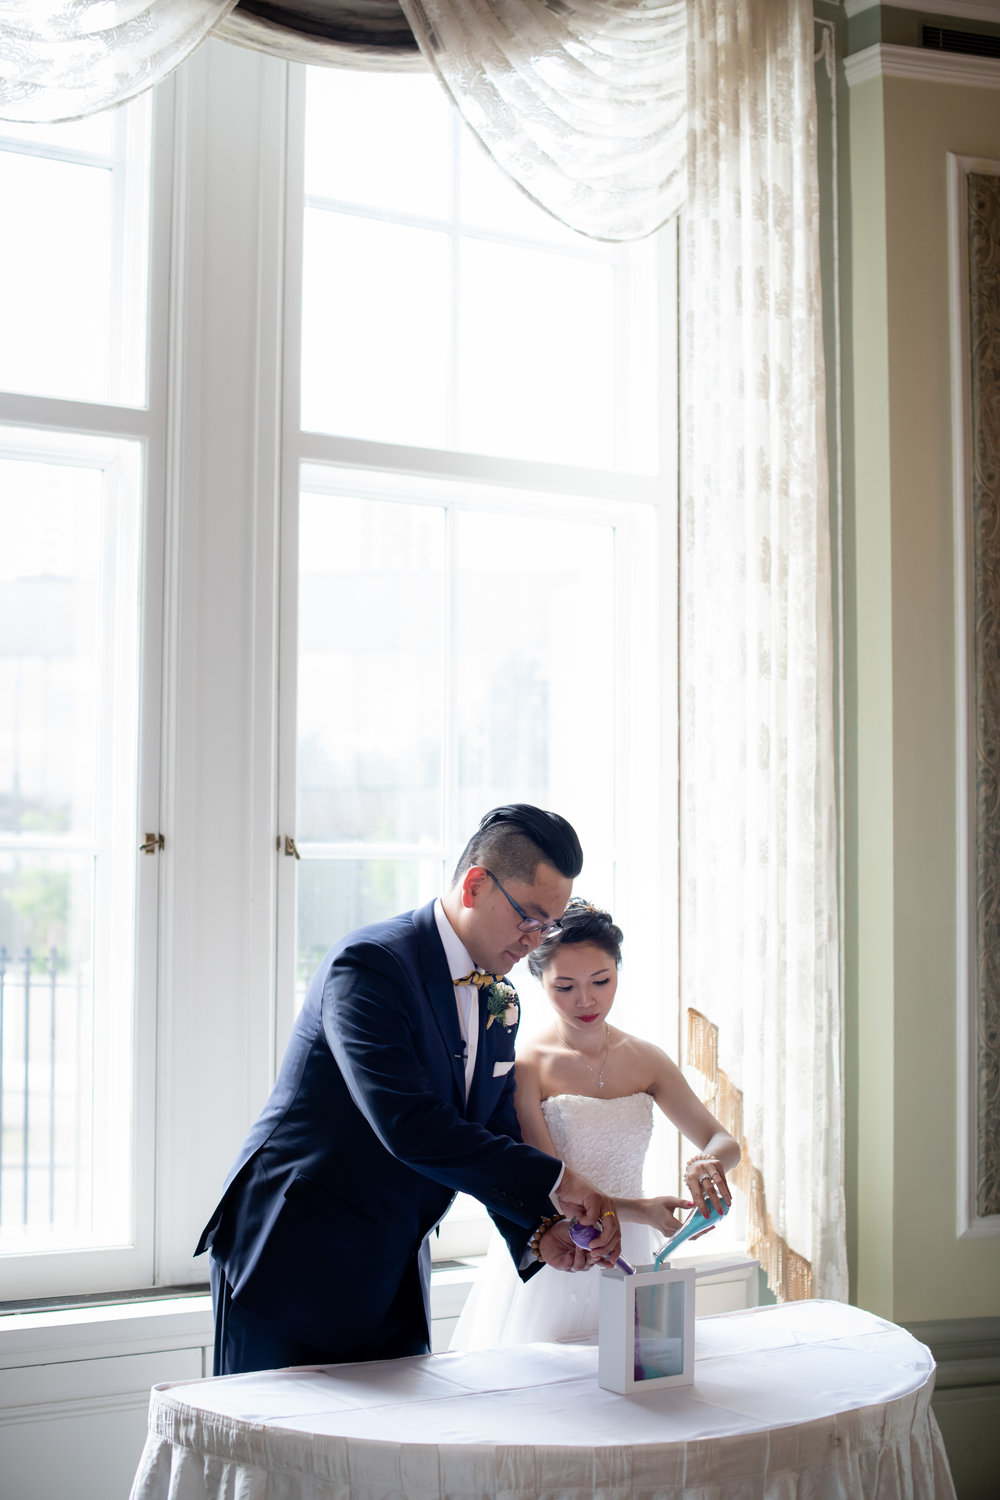 Selina_Chris_Wedding_Sneak_Peek_048.jpg